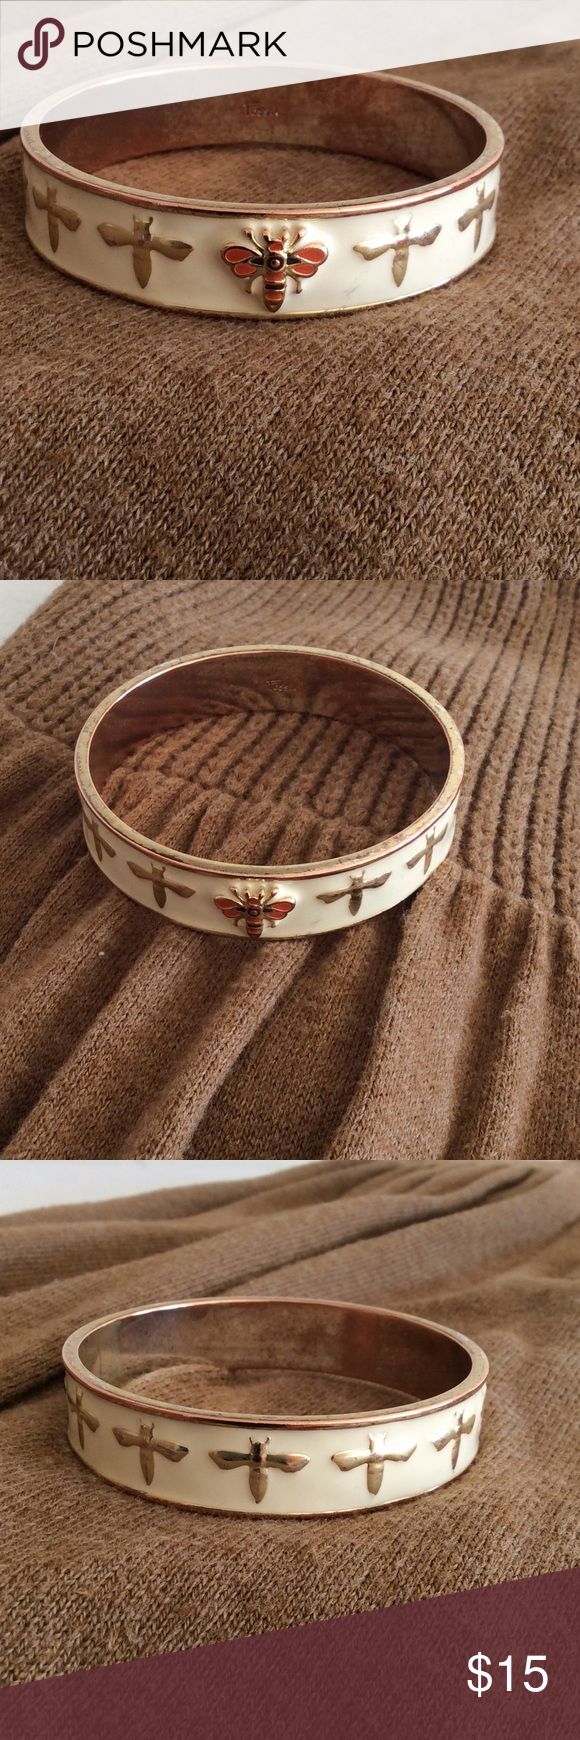 FOSSIL Vintage Bangle Bracelet FOSSIL Vintage Dragonfly Bangle Bracelet.  Exterior of Bracelet has little wear.  The interior and rim of bracelet is worn.  #fossil #vintage fossilbanglebraceket Fossil Jewelry Bracelets